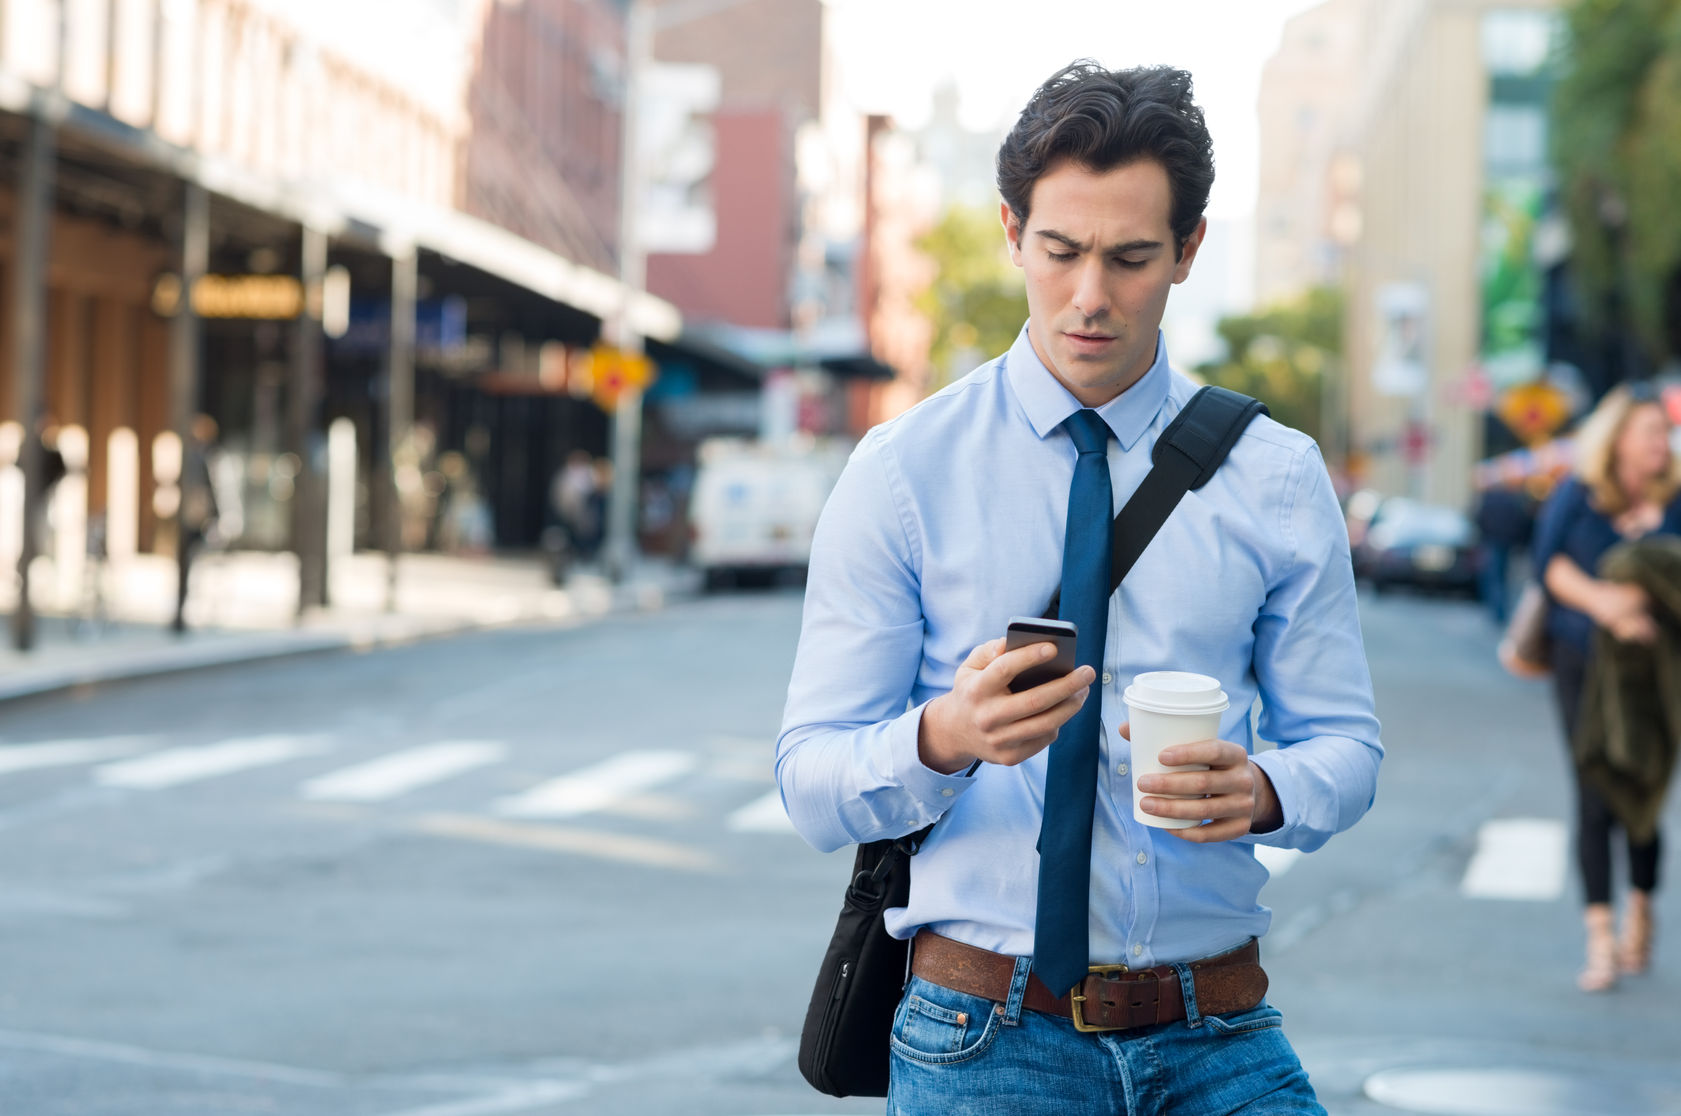 SMS Text Messages For University Alumni